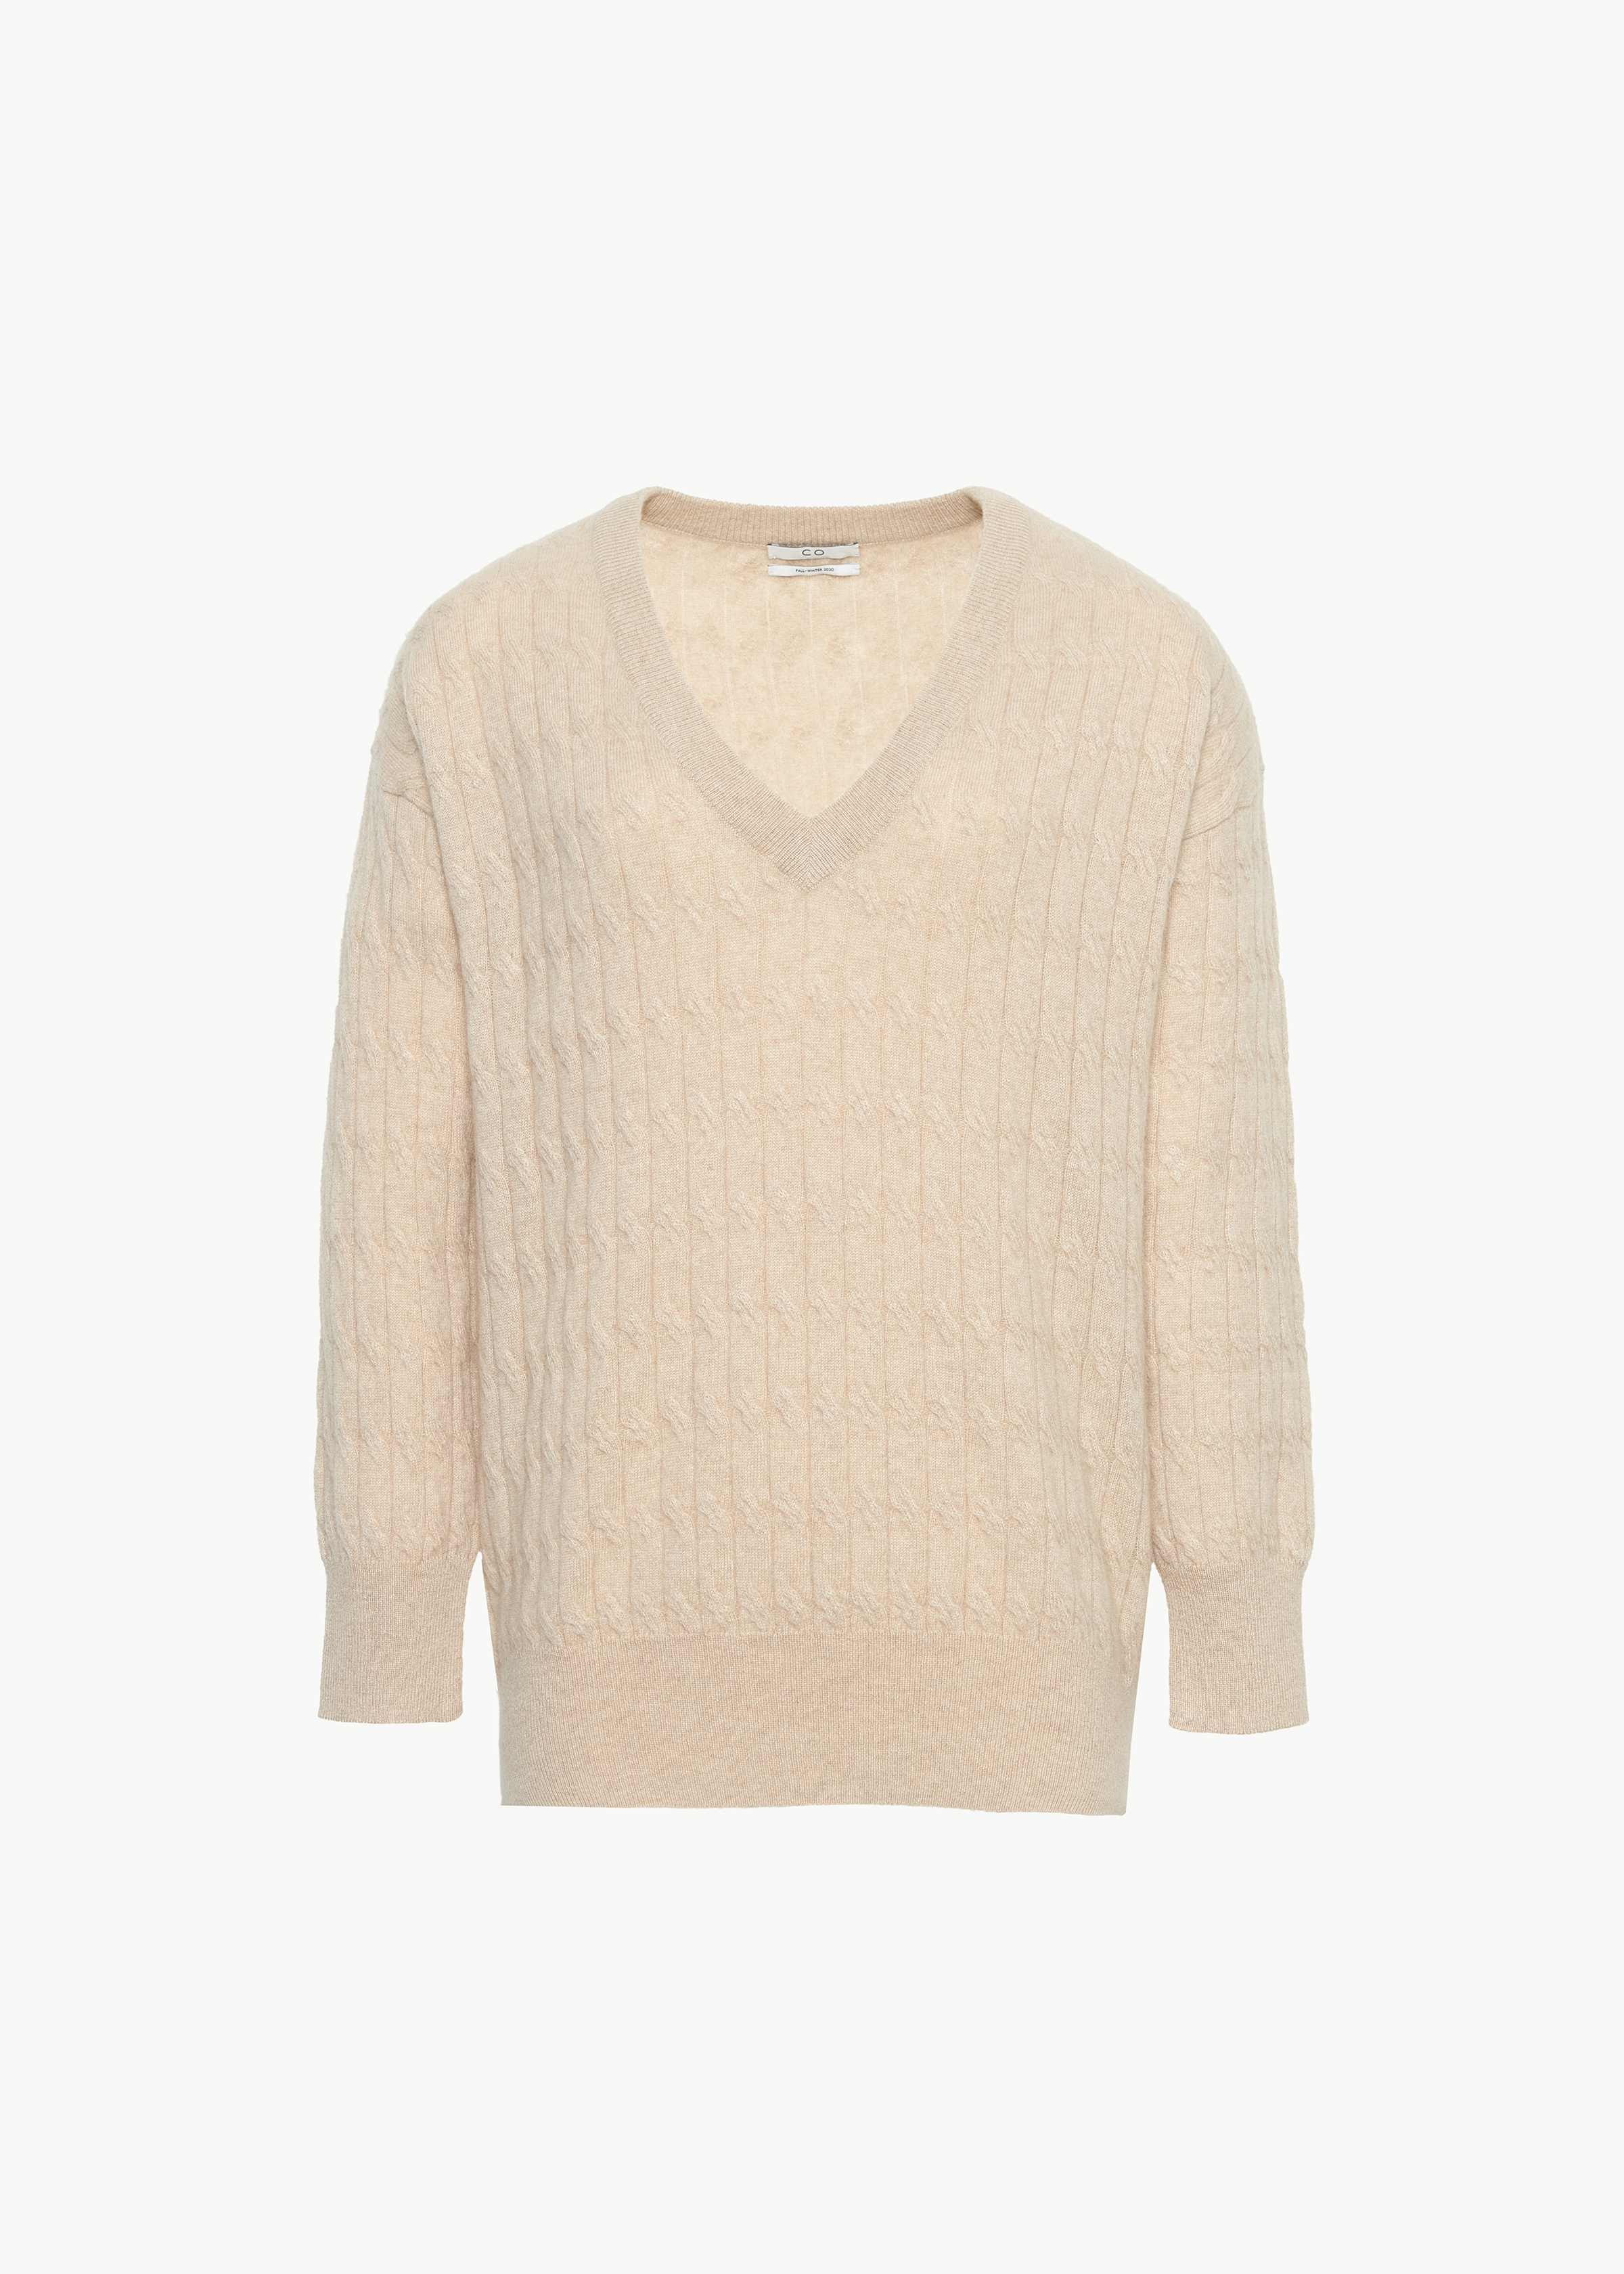 Cable Knit V Neck Sweater in Cashmere - Copper in Sand by Co Collections